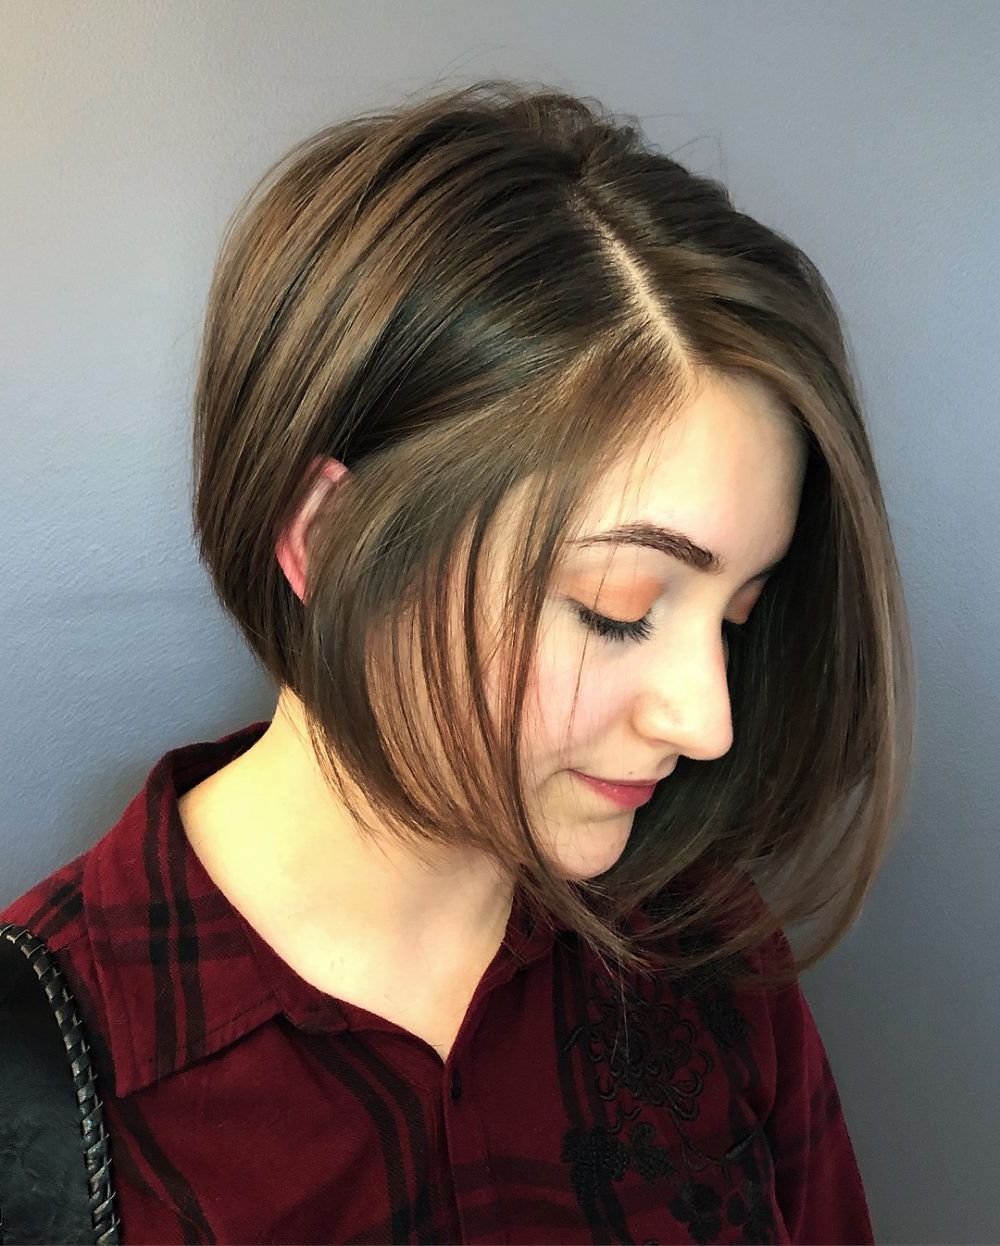 33 Flattering Short Hairstyles For Round Faces In 2018 Inside Low Maintenance Short Haircuts For Round Faces (View 2 of 25)